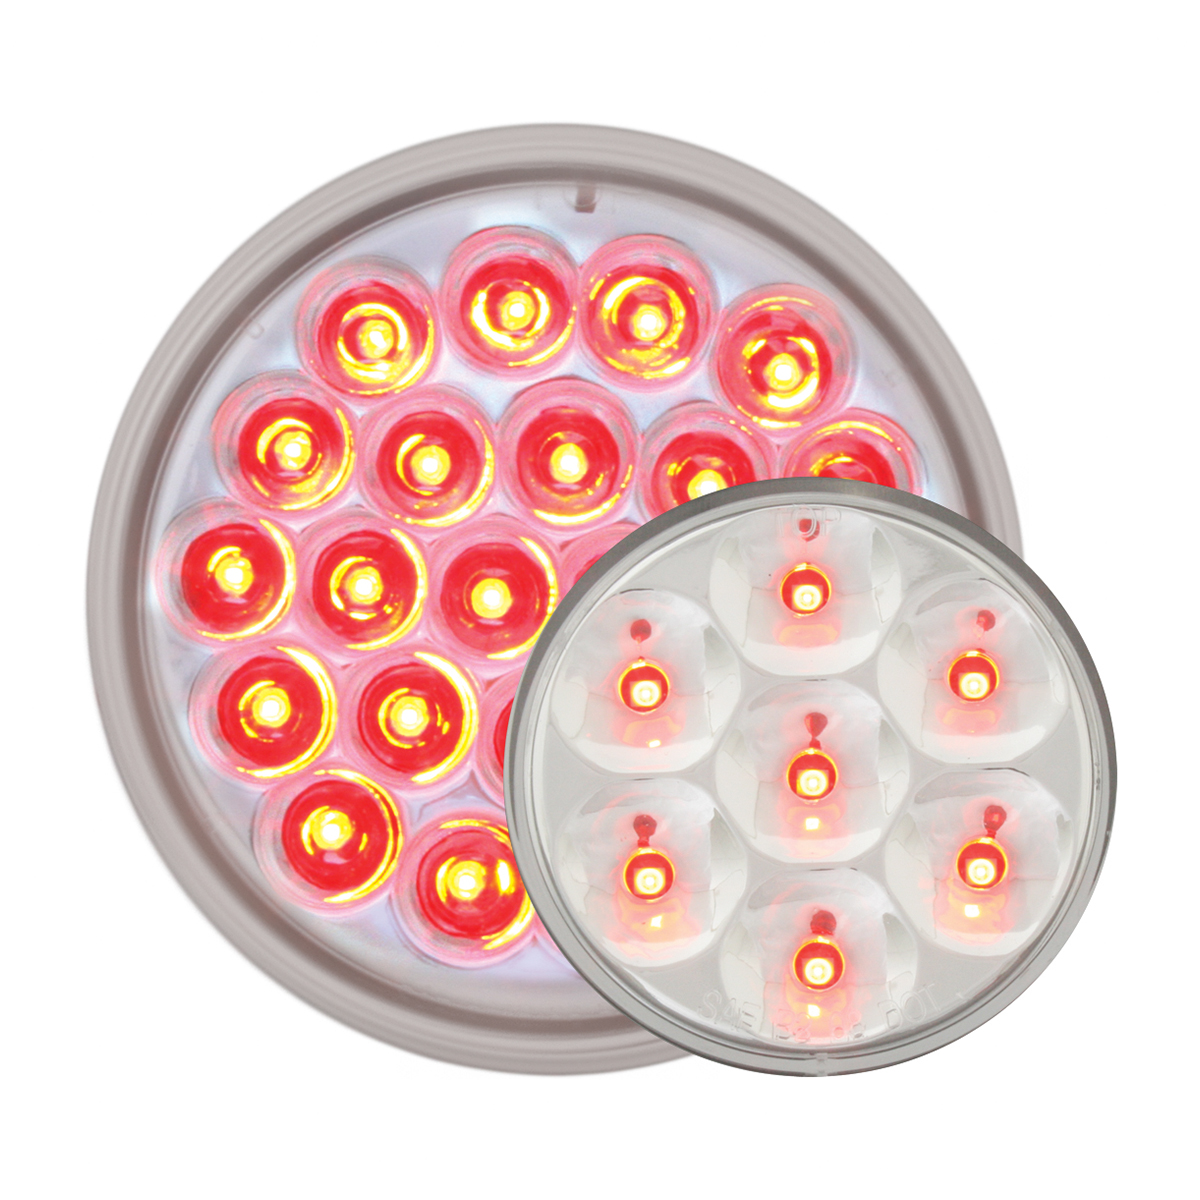 #78274/#76543 Pearl LED Flat - Red/Clear